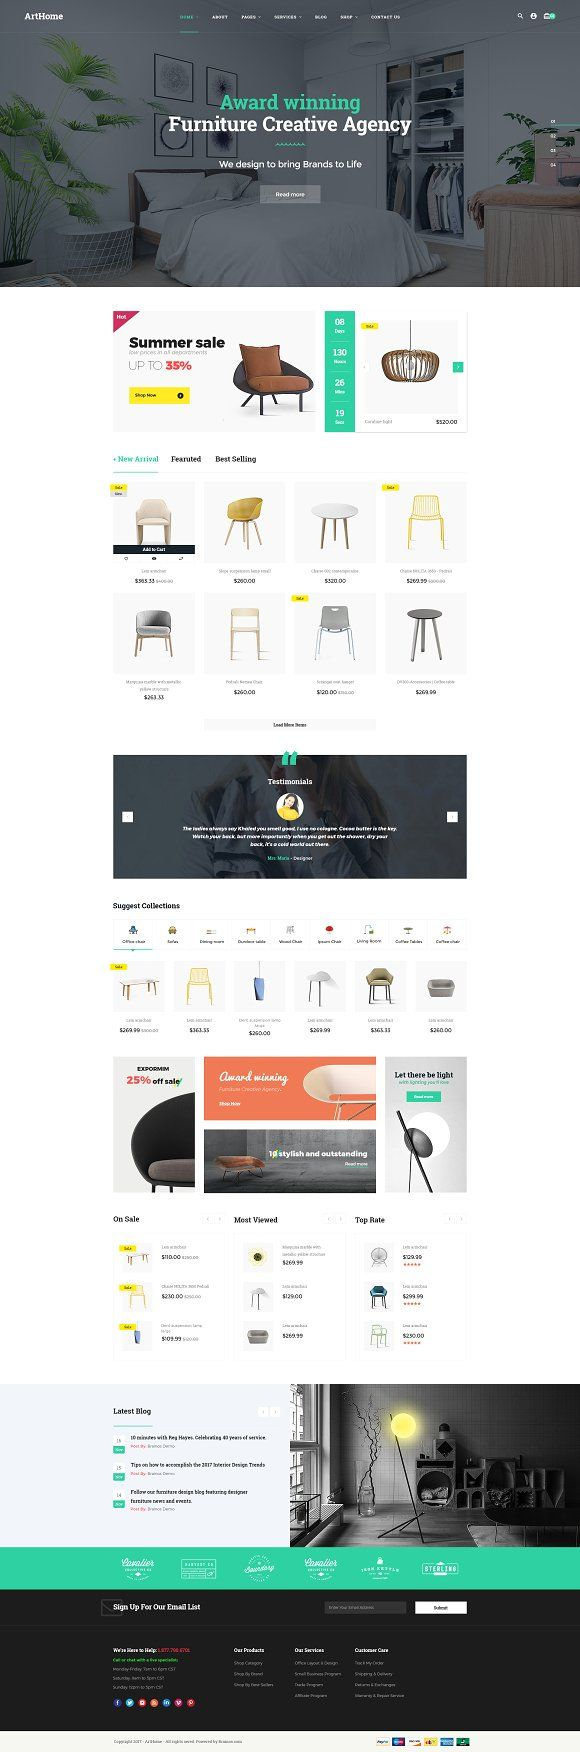 Arthome Theme by Opal Wordpress Theme on